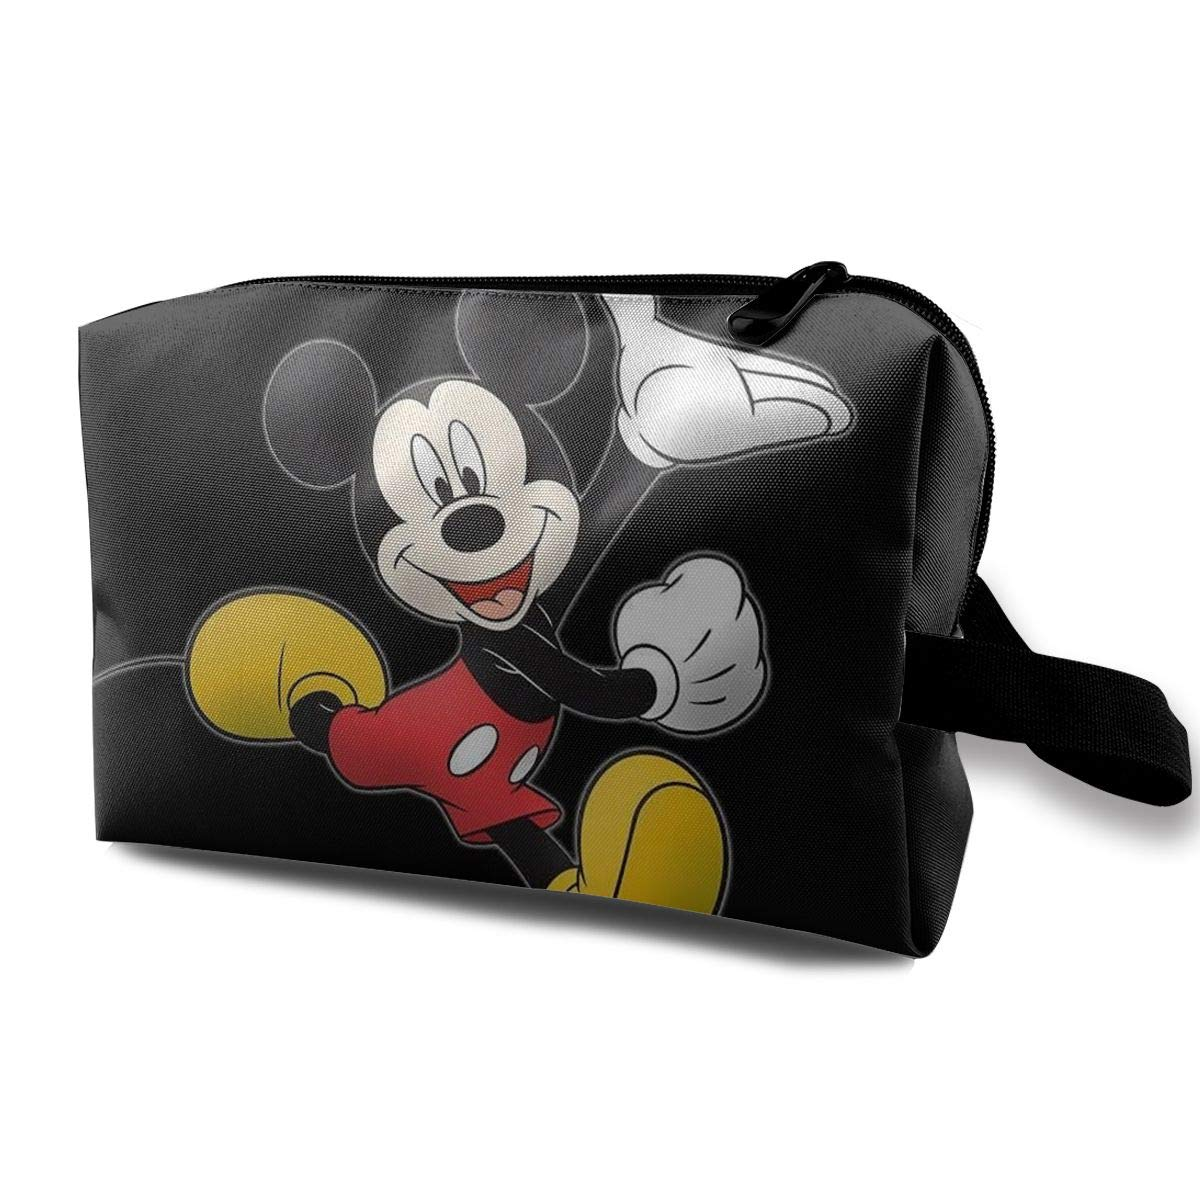 LIUYAN Toiletry Bag Happy Mickey Mouse Make Up Organizers and Storage for Women Girls